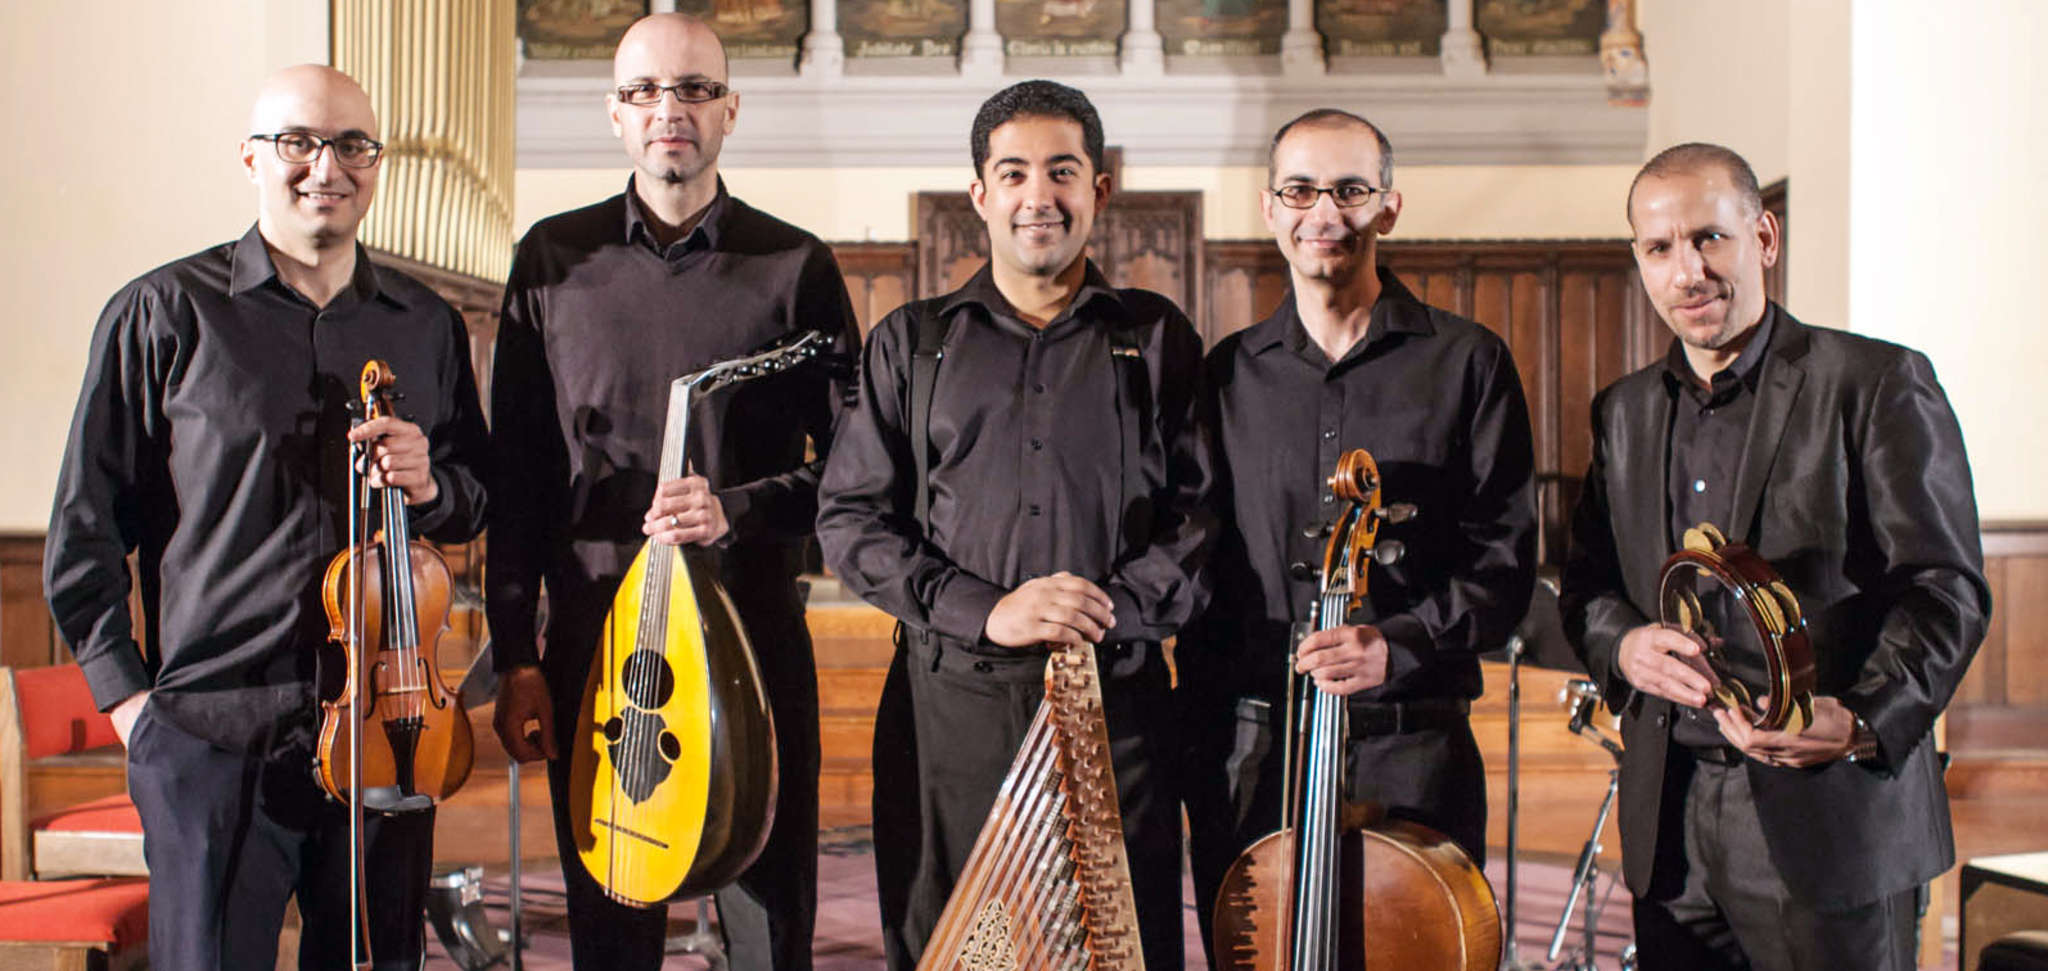 Al-Bustan´s Takht Ensemble, a classical Arab chamber ensemble, performed Saturday at Bryn Mawr College´s Goodhart Hall.